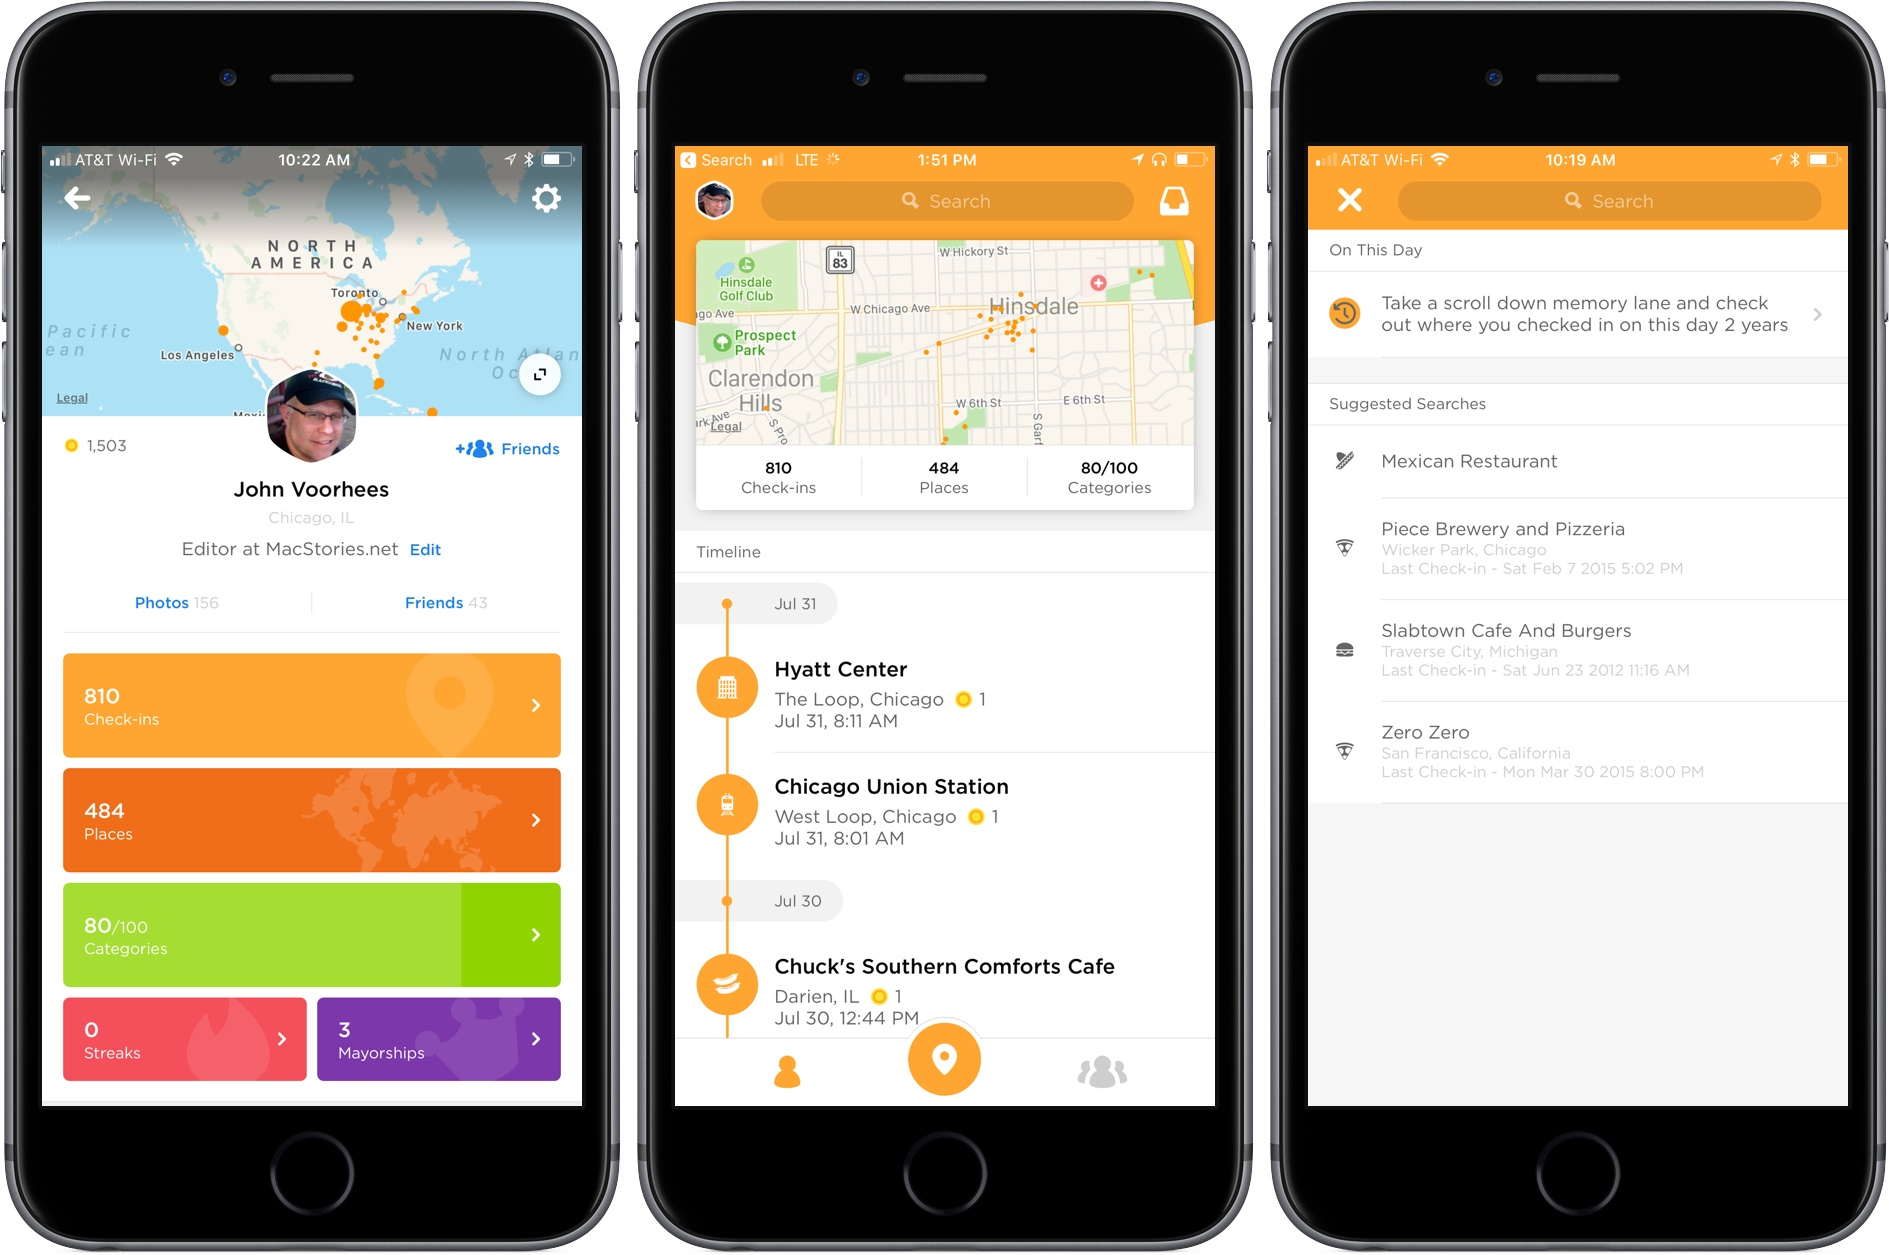 swarm shifts focus to become a personal travel timeline macstories